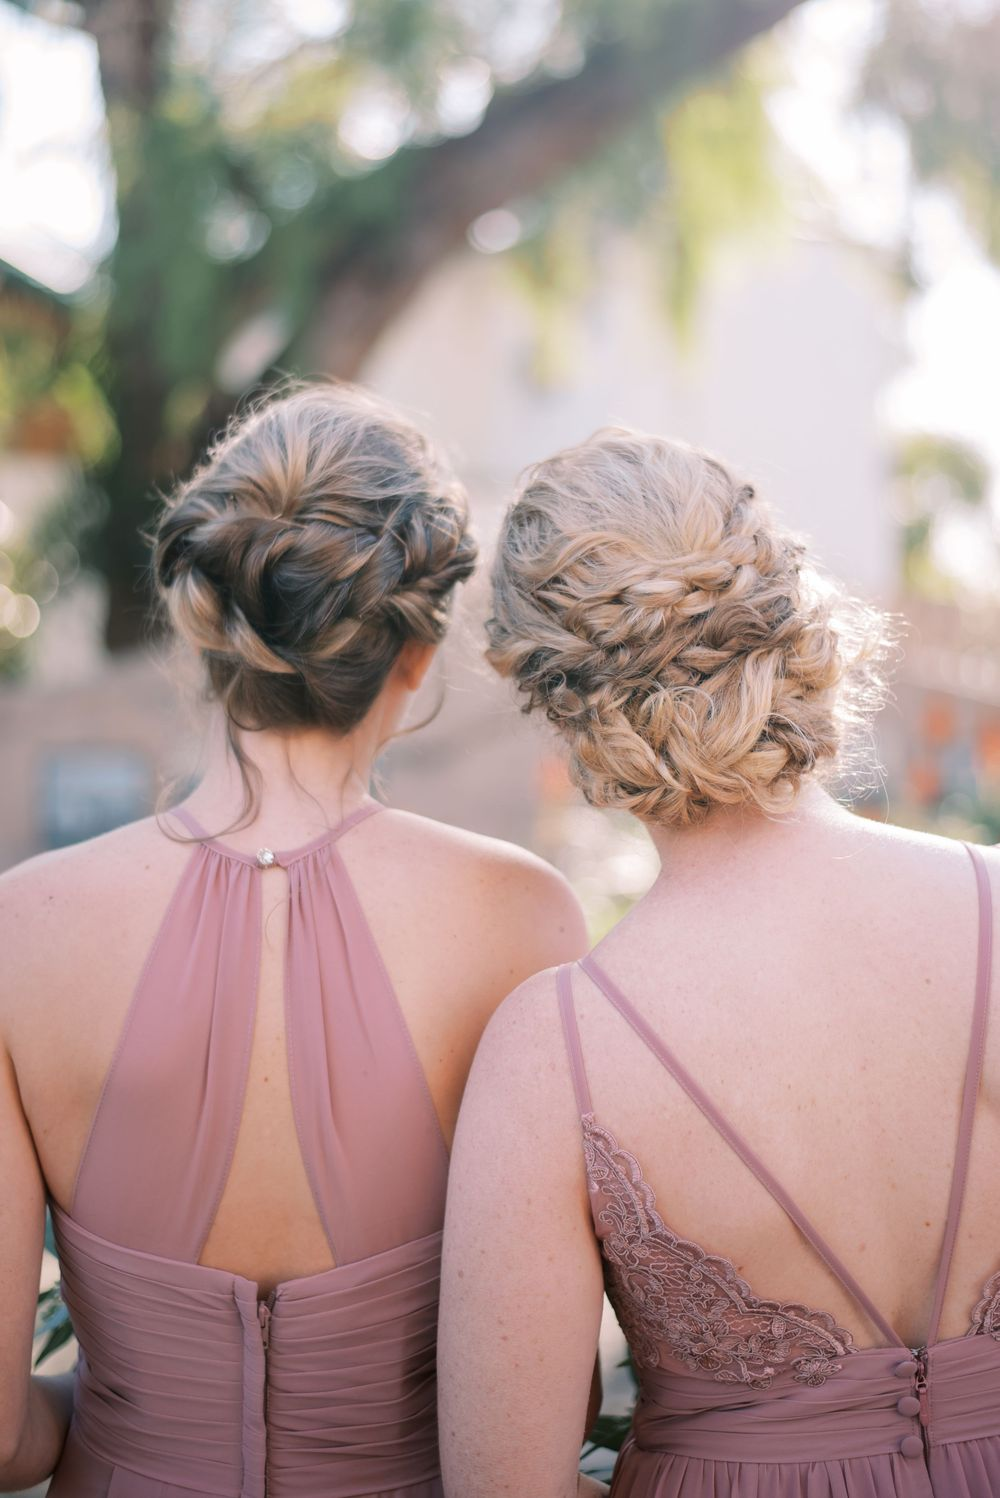 Bridesmaid braid hairstyle